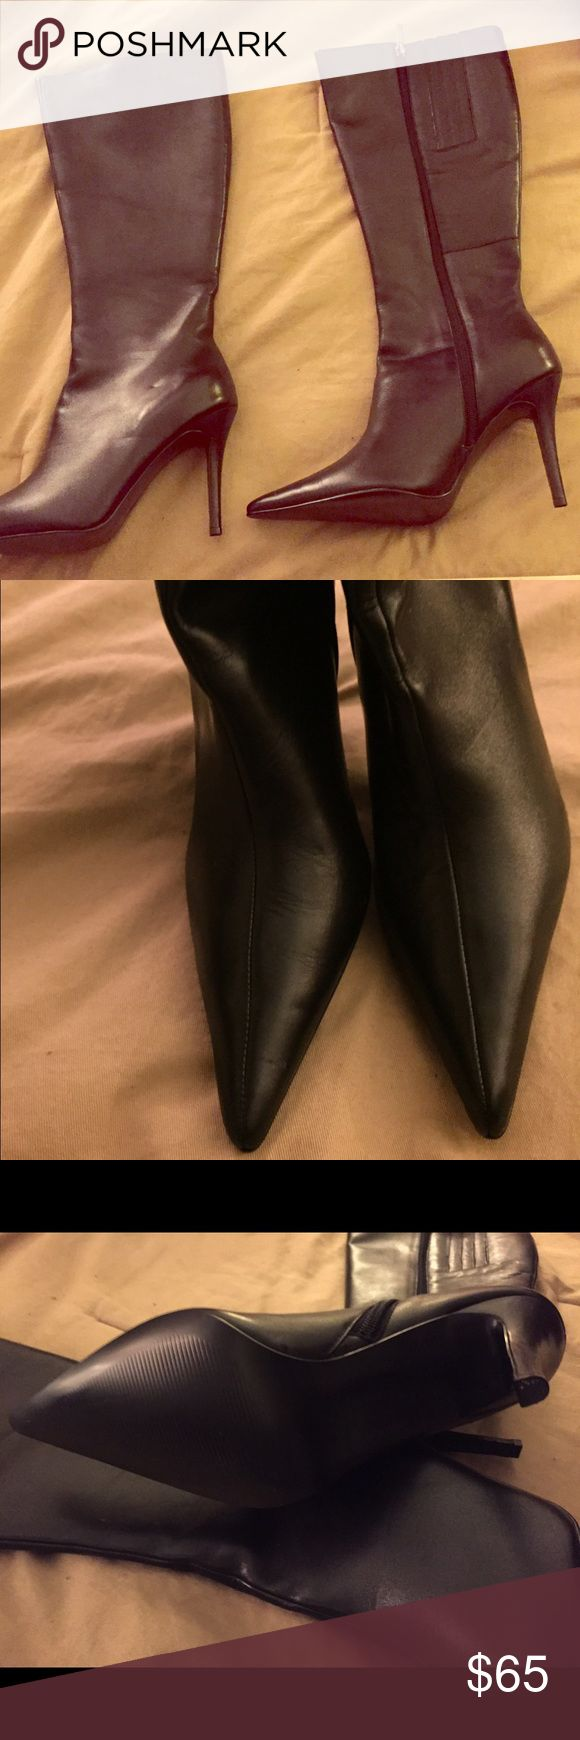 Colin Stuart Boots NEW Colin Stuart high heeled boots in black. That are brand new, no box. They are a size 8.5. They are leather. Colin Stuart Shoes Heeled Boots